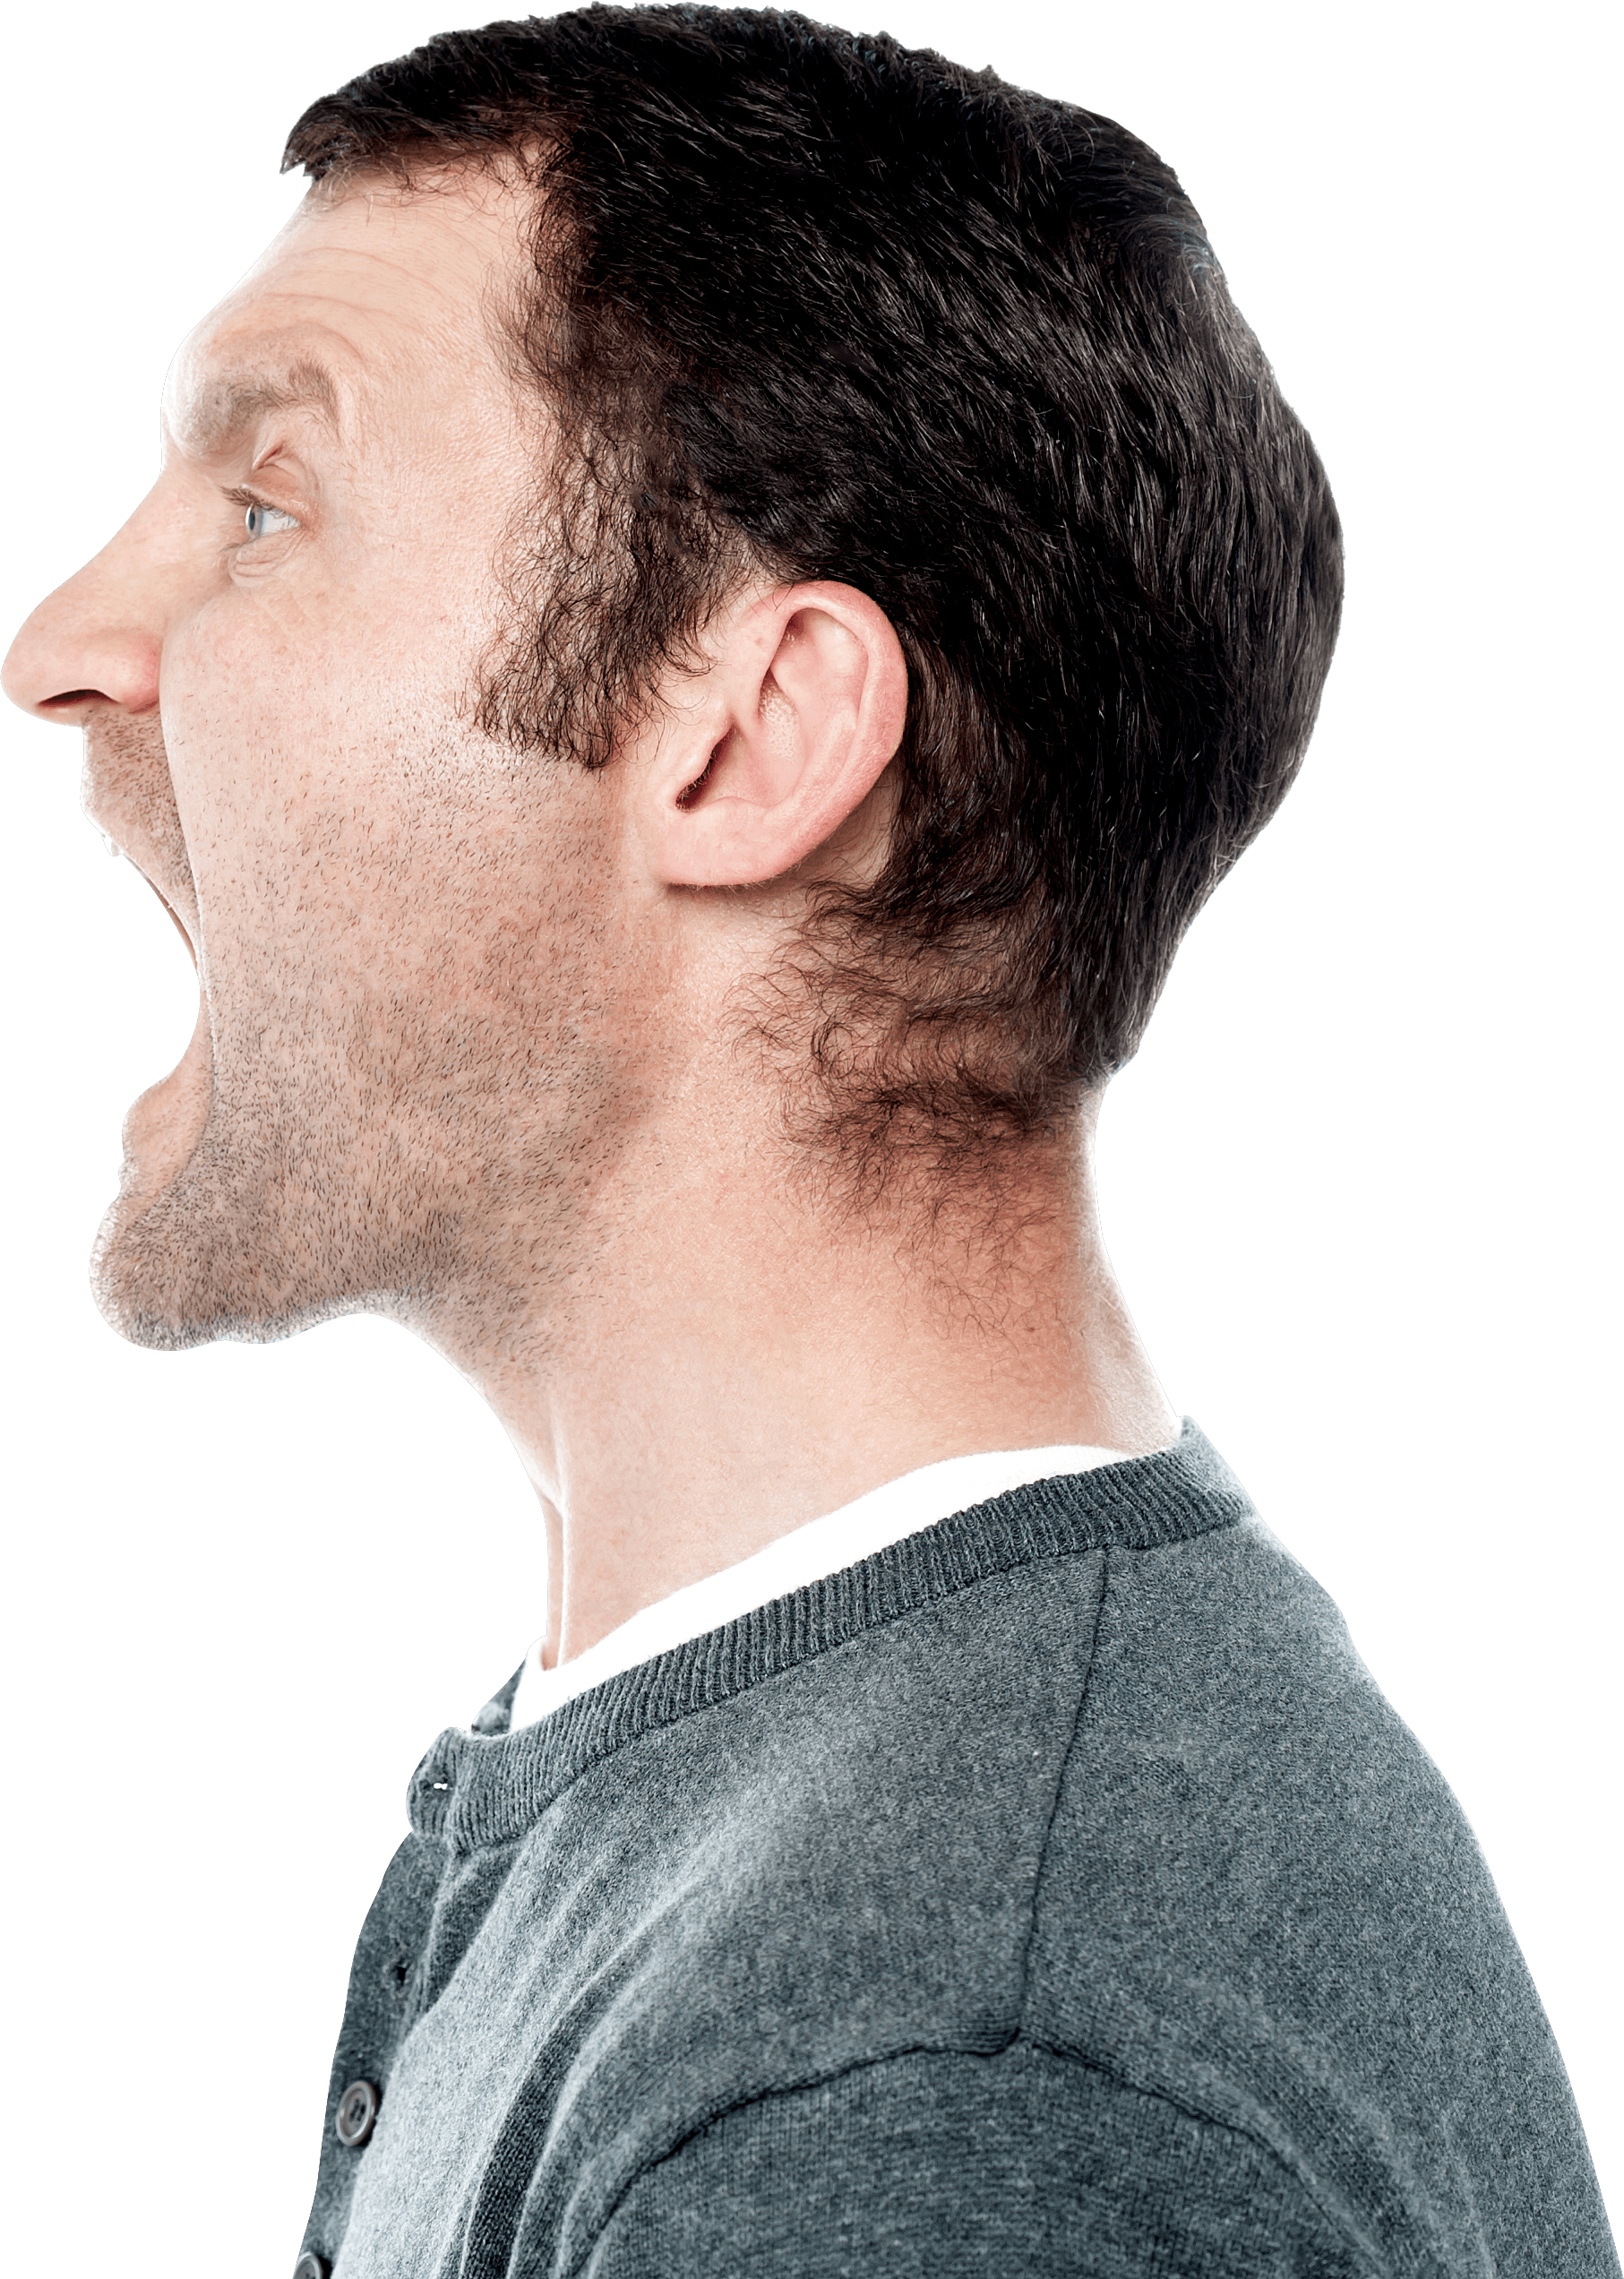 kisspng-stock-photography-screaming-royalty-free-screaming-man-5ae14aaf64c590.2525655815247141594128